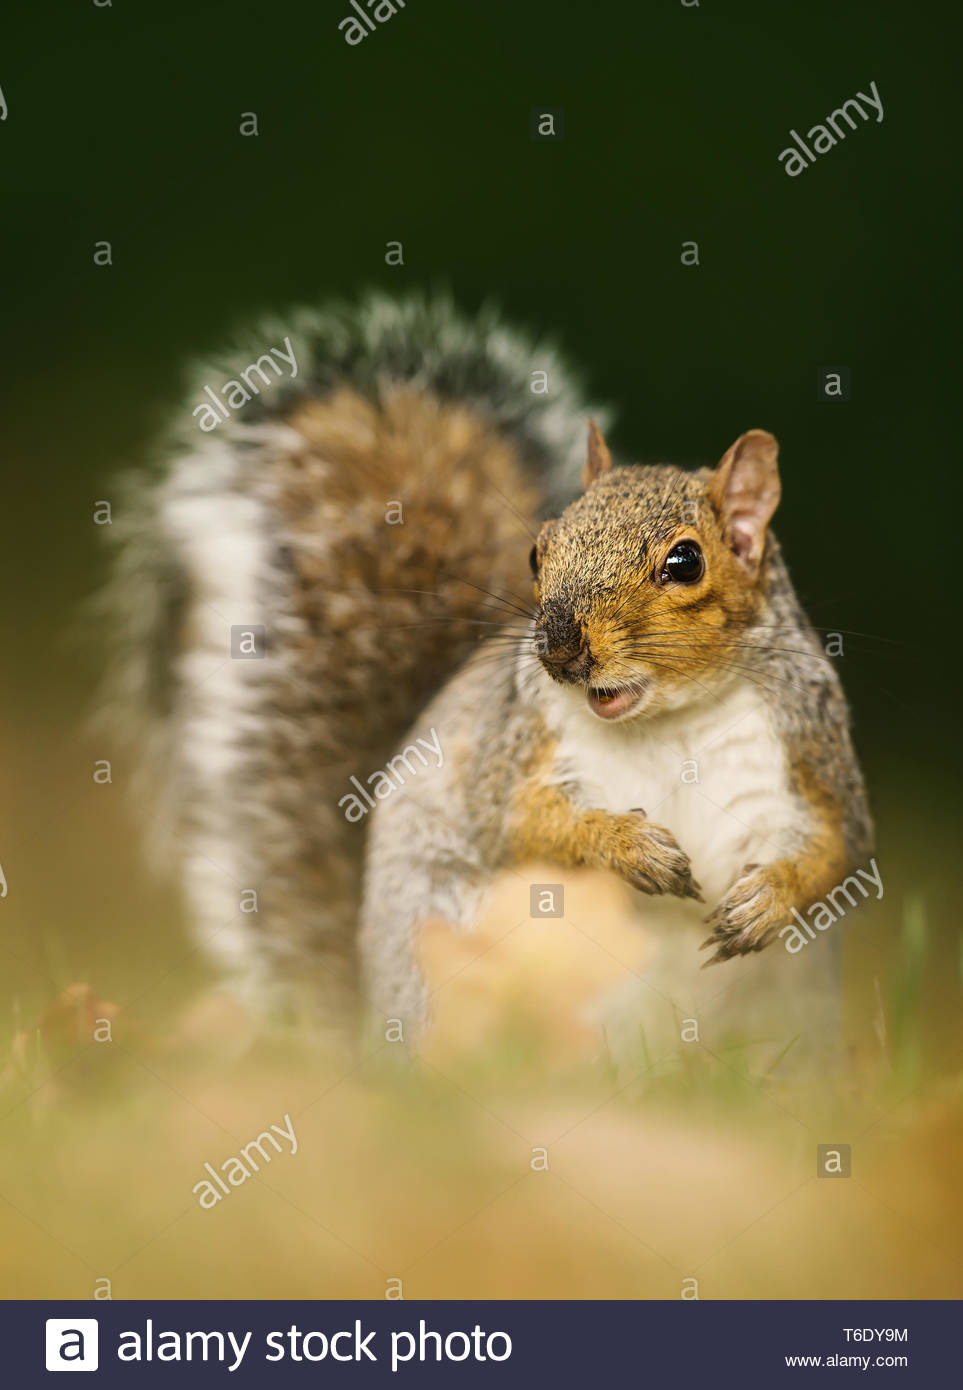 Surprised grey squirrel standing in autumnal leaves, UK. - Stock Image